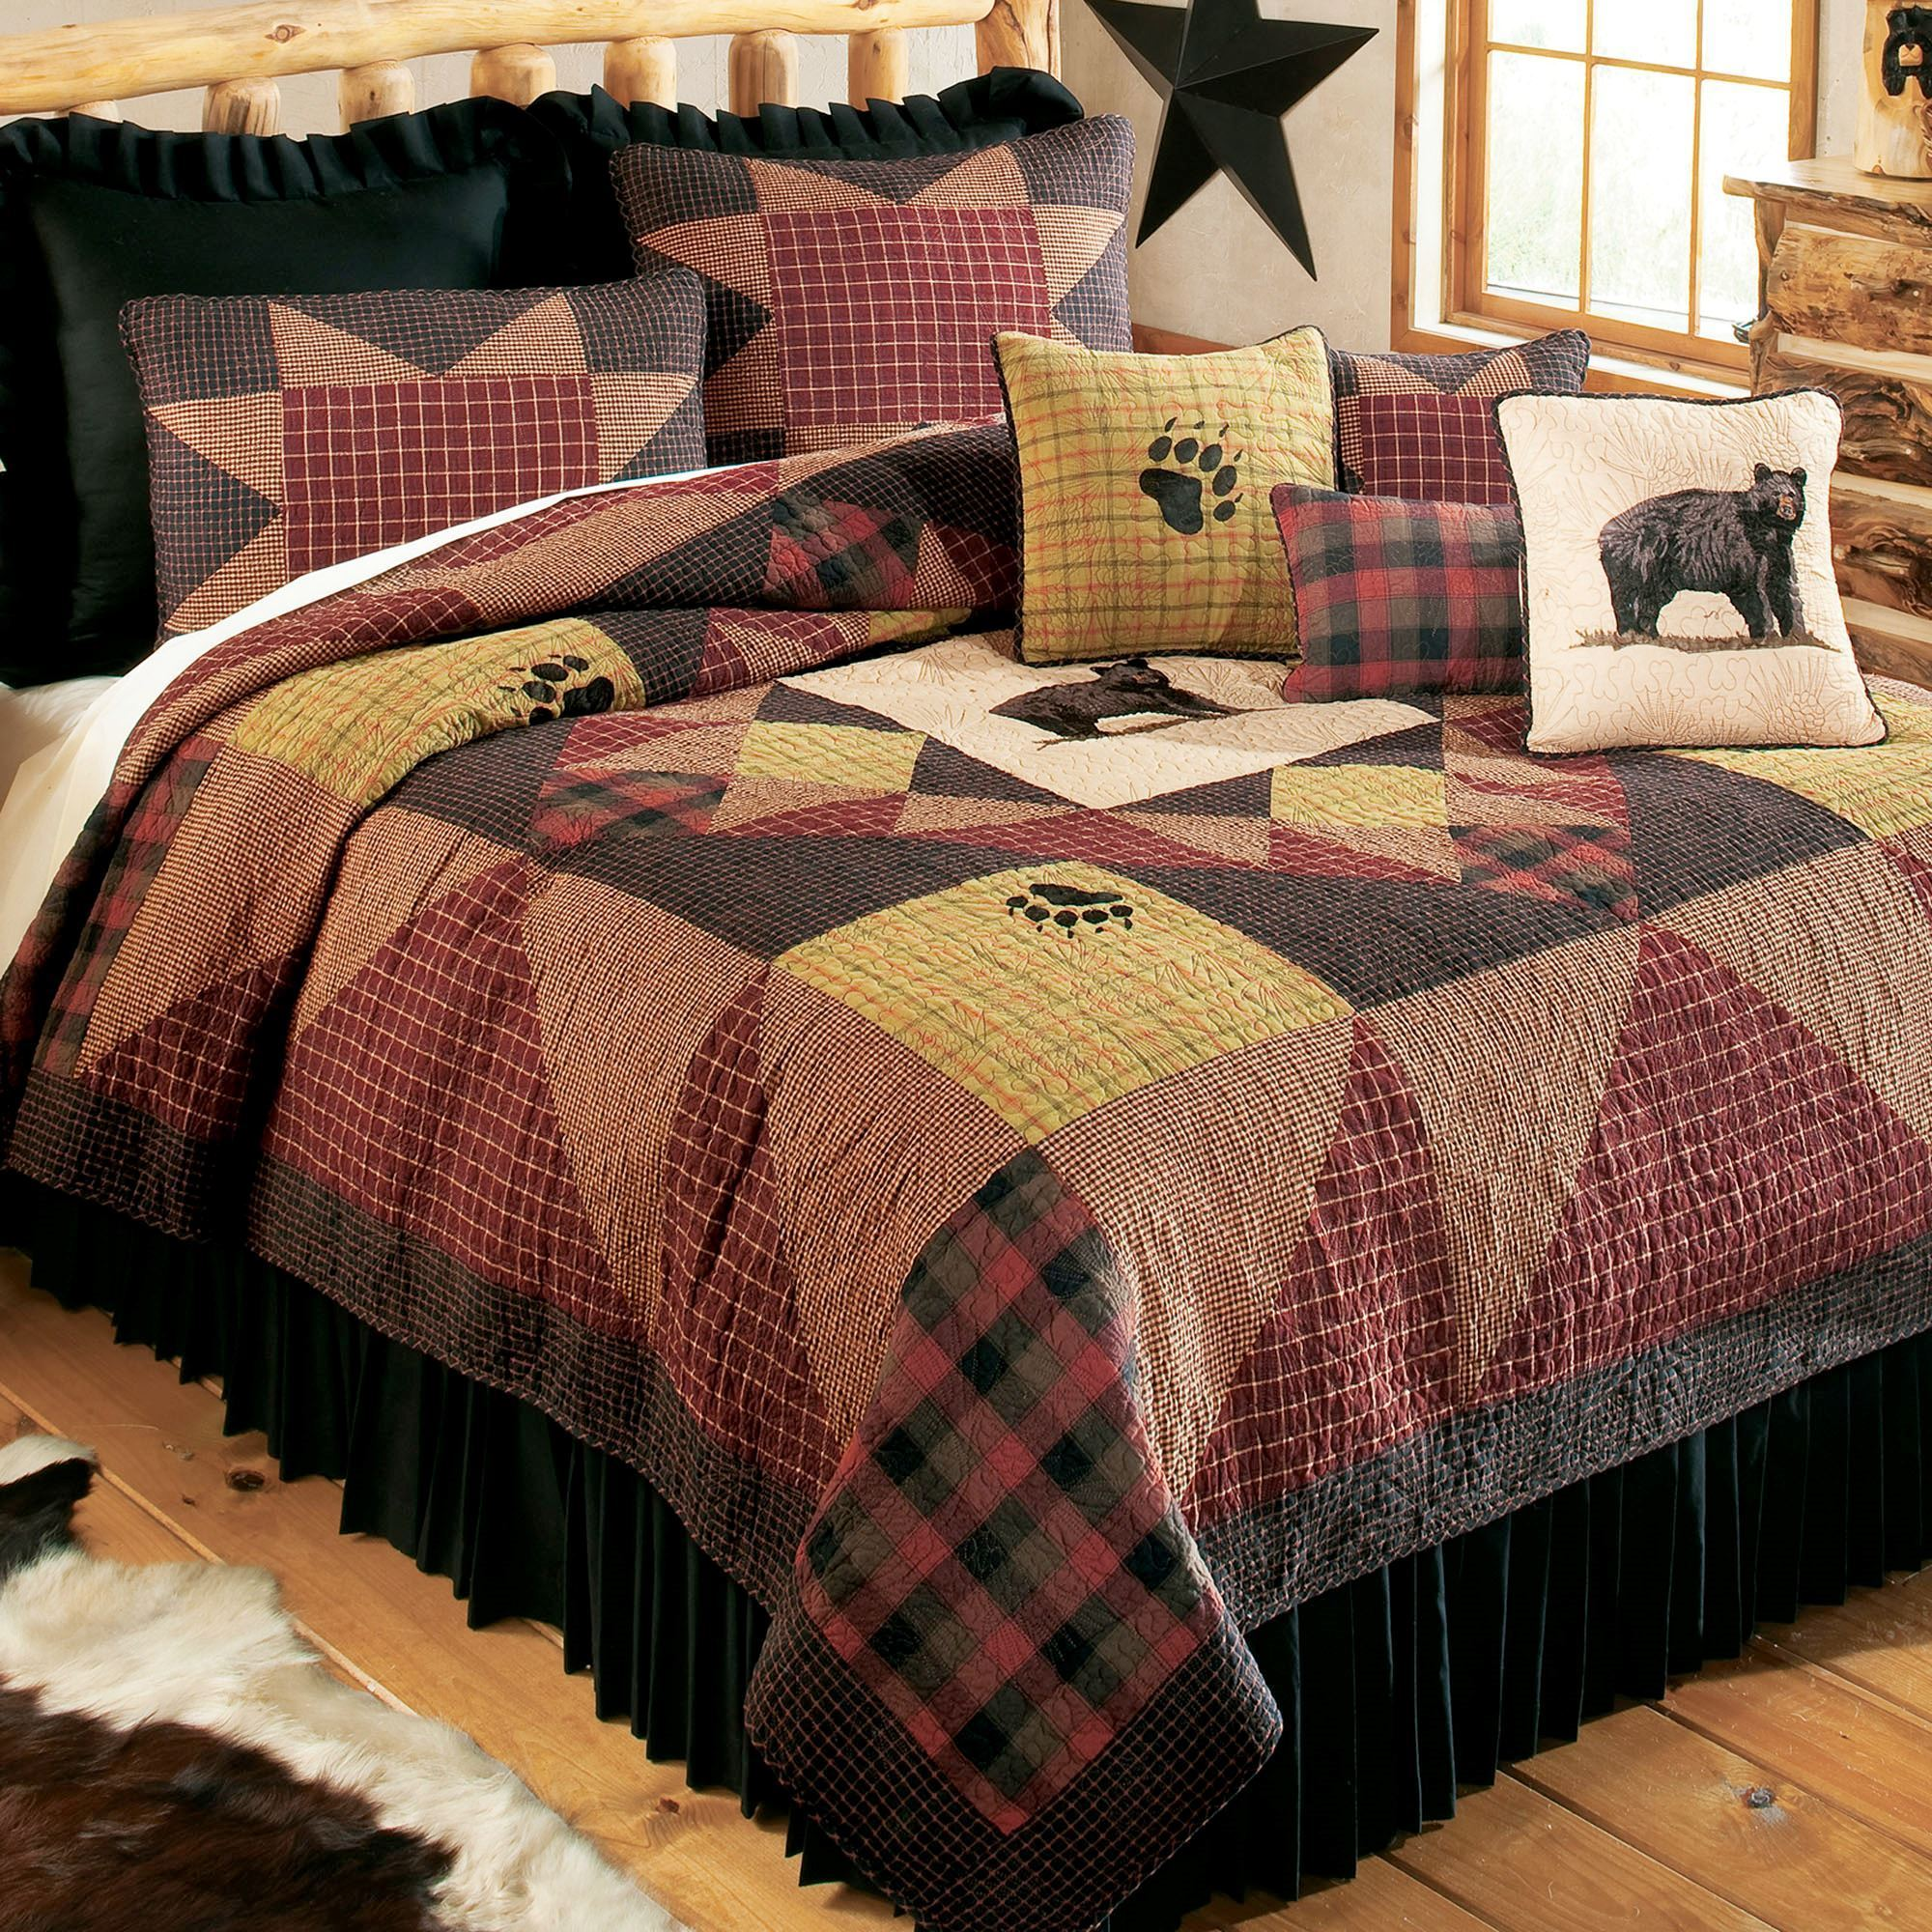 Bears Paw Plaid Patchwork Quilt Bedding By Donna Sharp